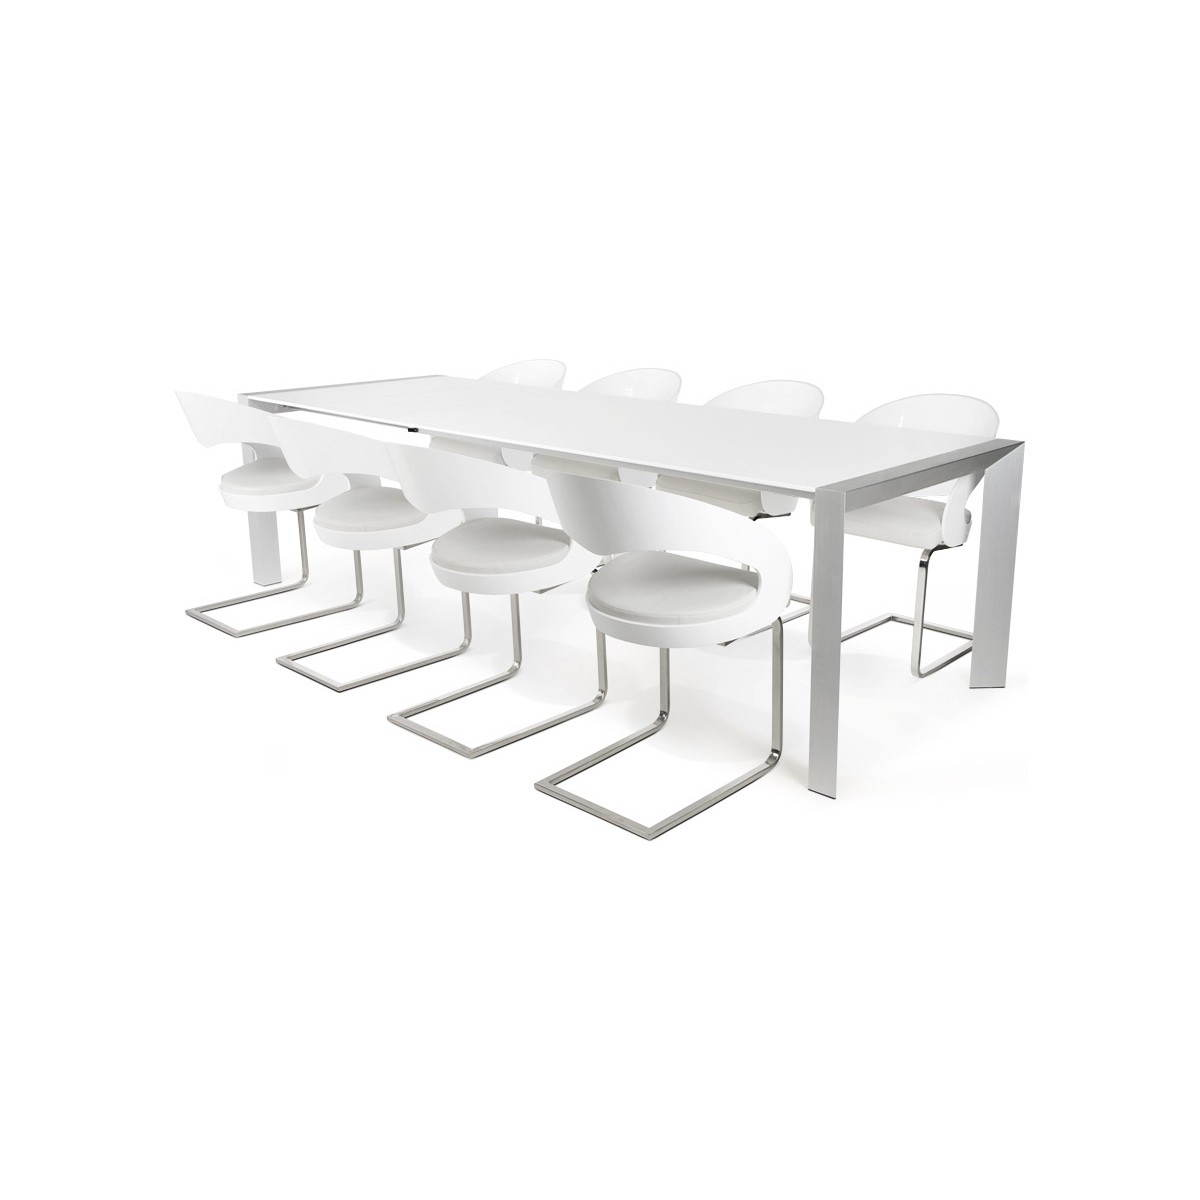 Table basse laque blanc et bois for Table design blanche